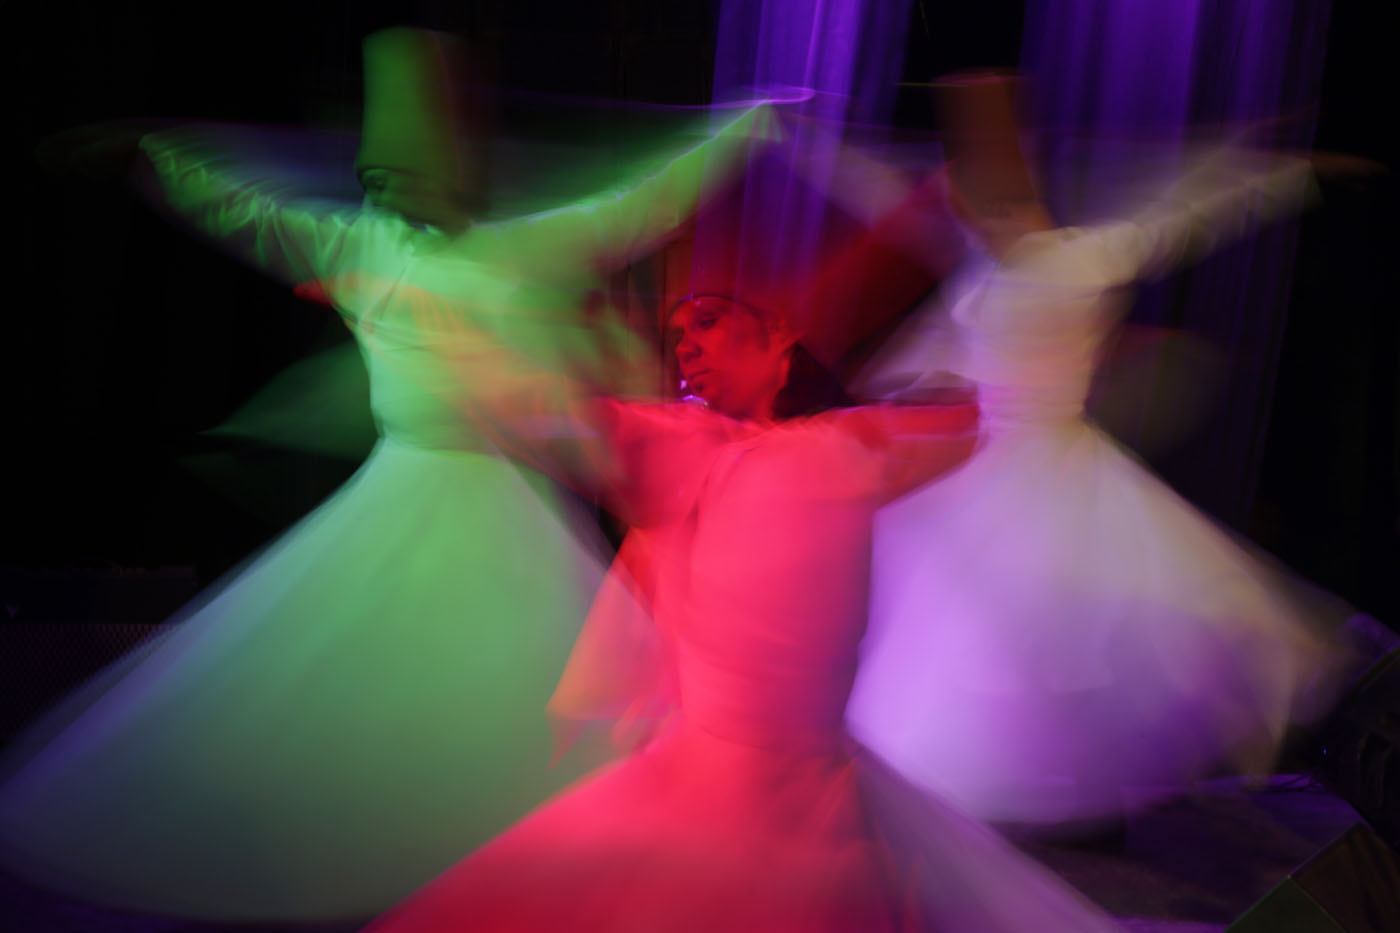 Whirling dervish, British royal fandom, Israel's Independence Day | April 23